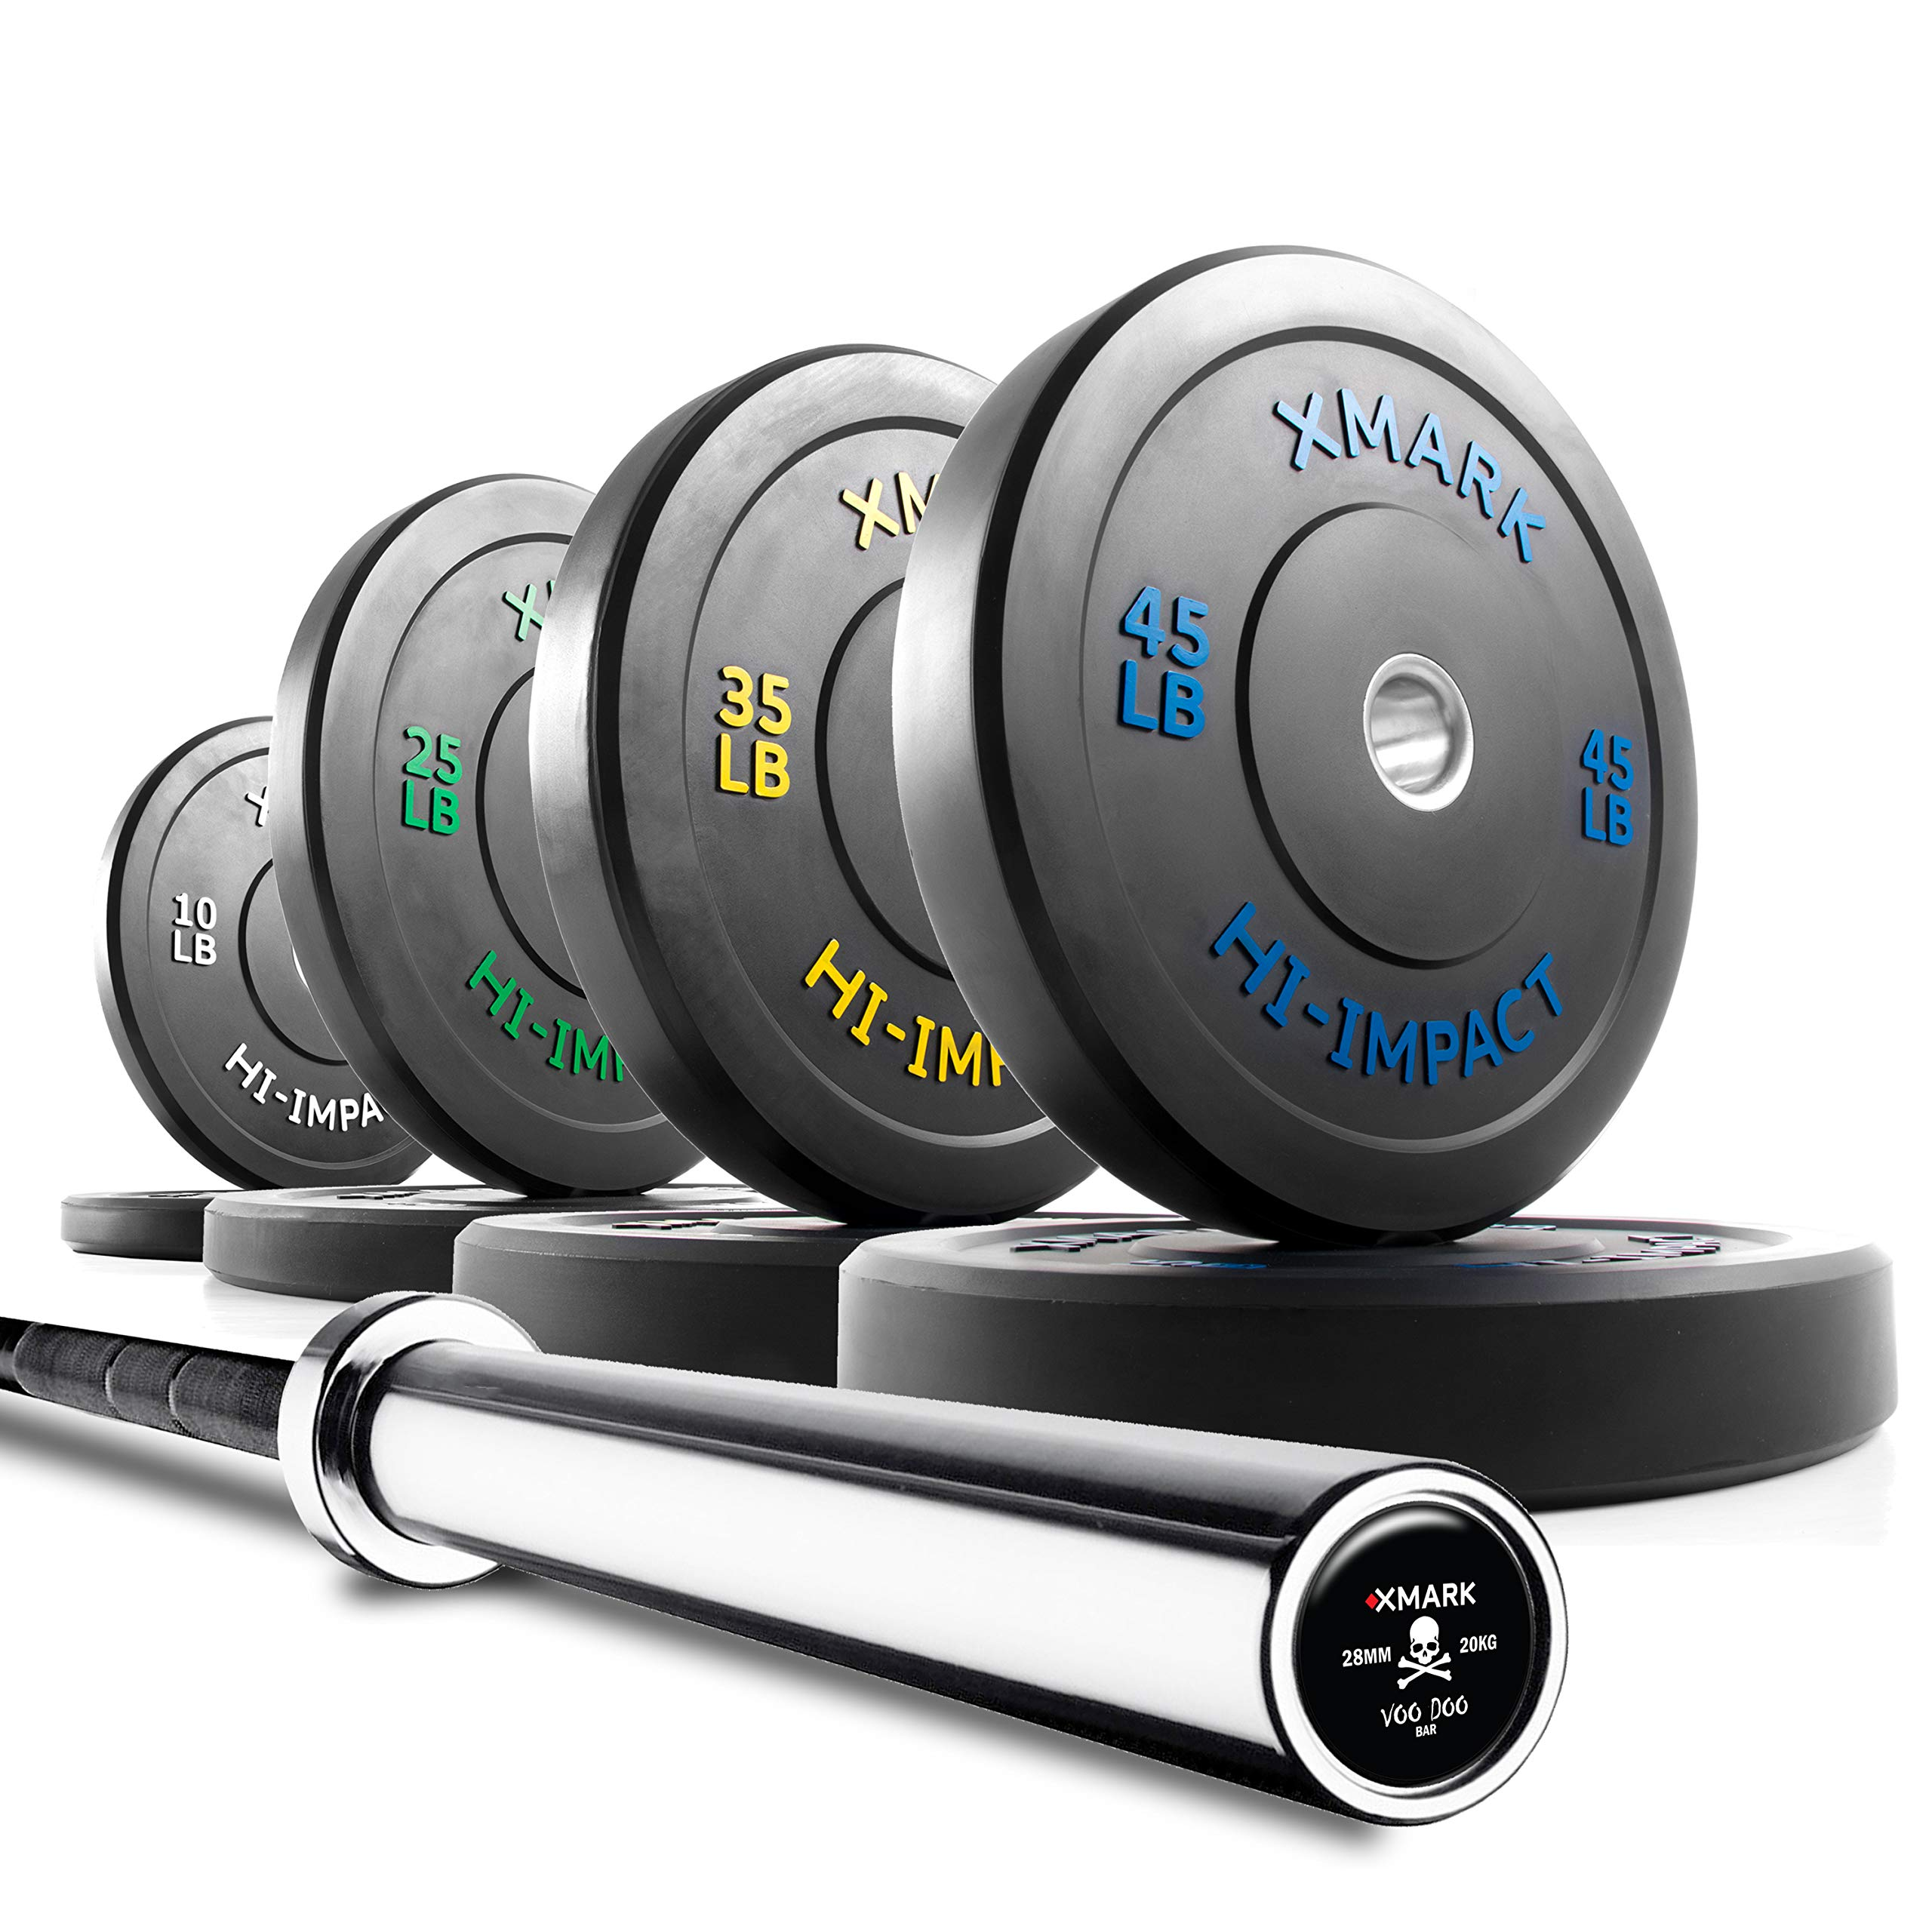 XMark Voodoo Commercial 7' Olympic Bar Plus 230 lbs. of XMark HI-Impact Low Bounce Virgin Rubber Olympic Bumper Plates